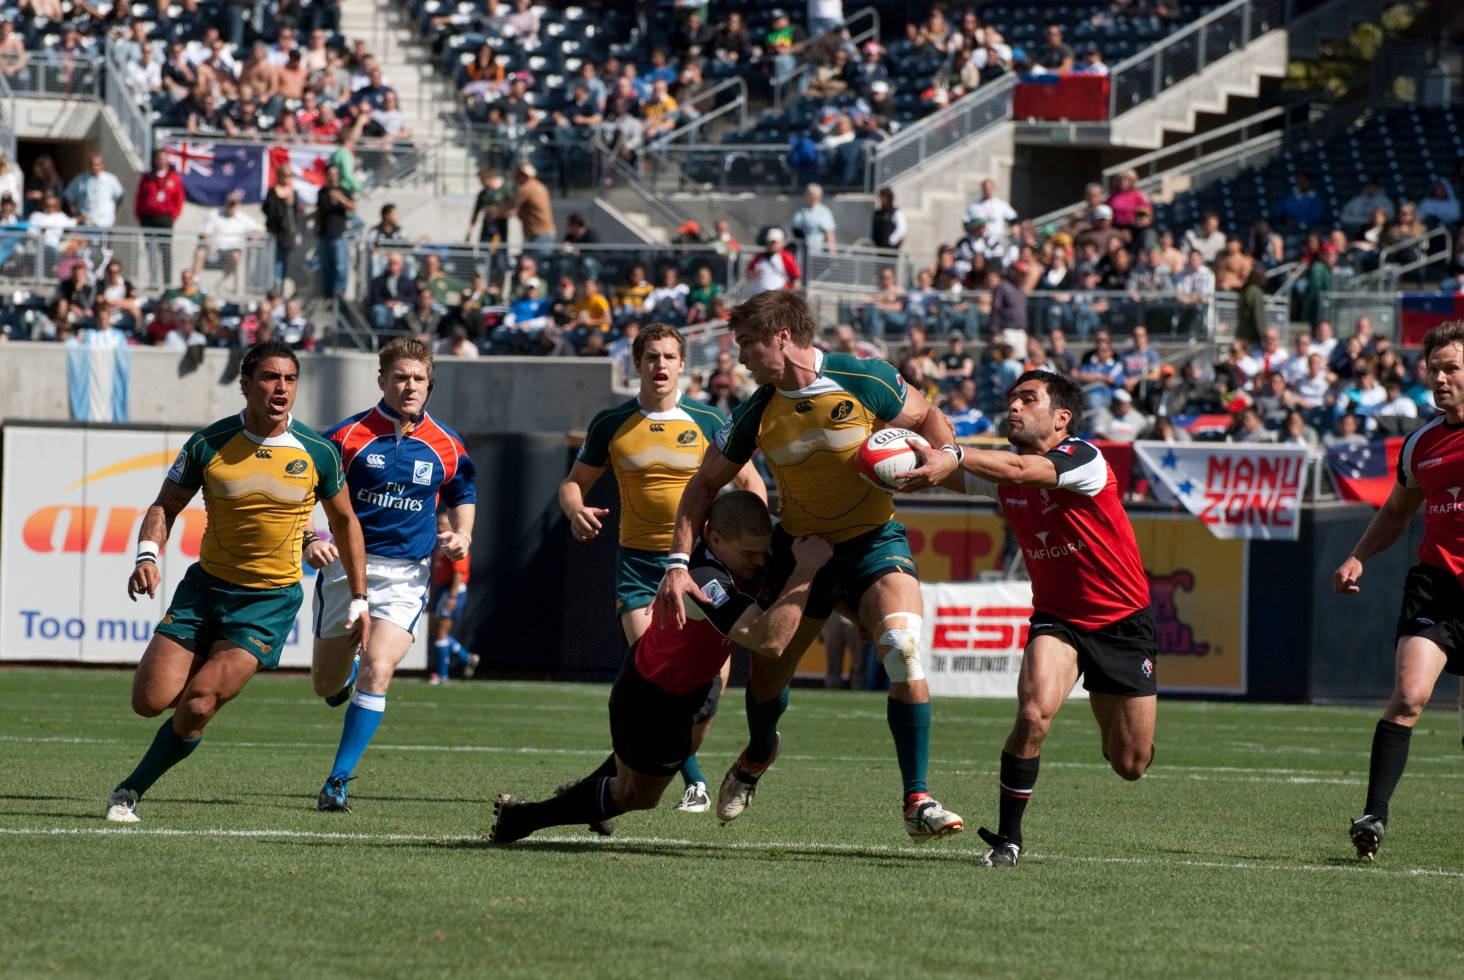 National_Guard_sponsorship_of_USA_Rugby_(3309784910).jpg